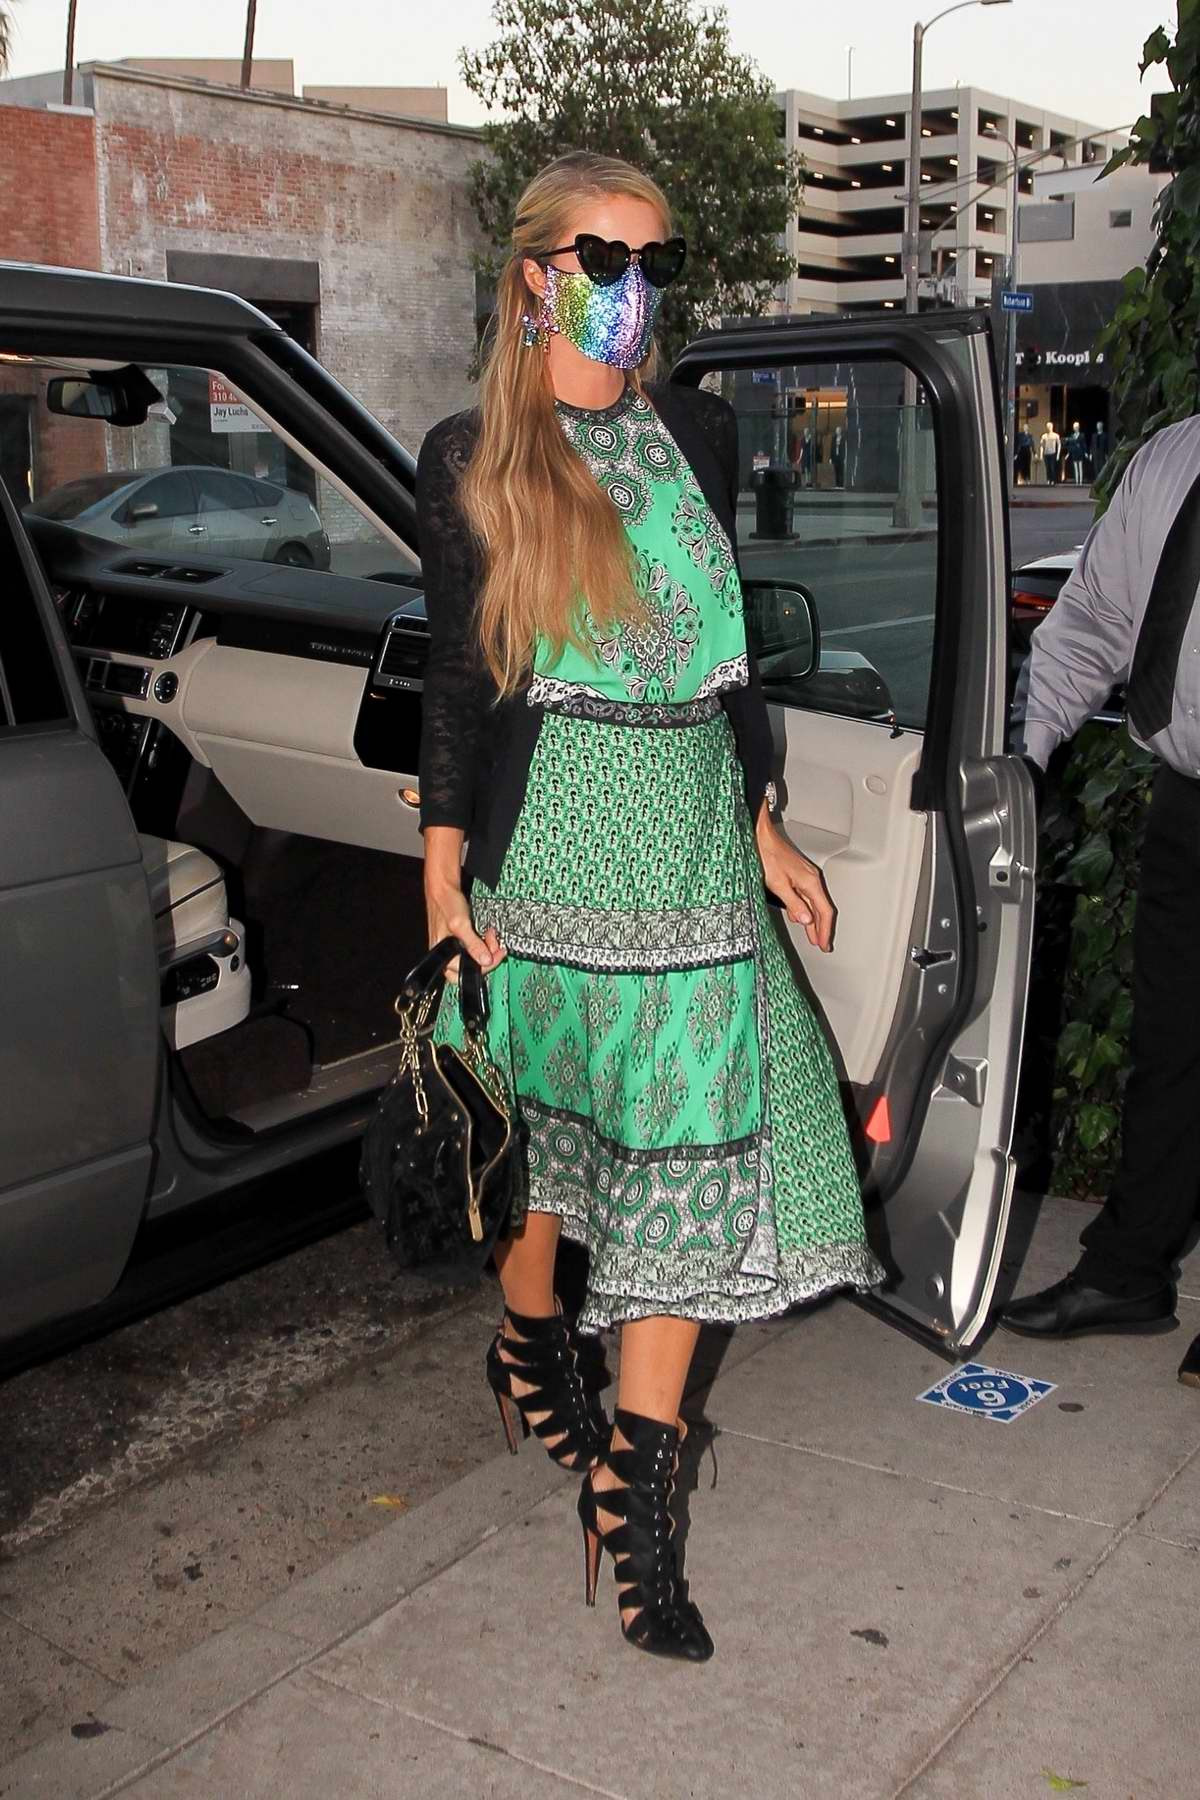 Paris Hilton seen wearing a colorful face mask as she arrives at The Ivy in Los Angeles